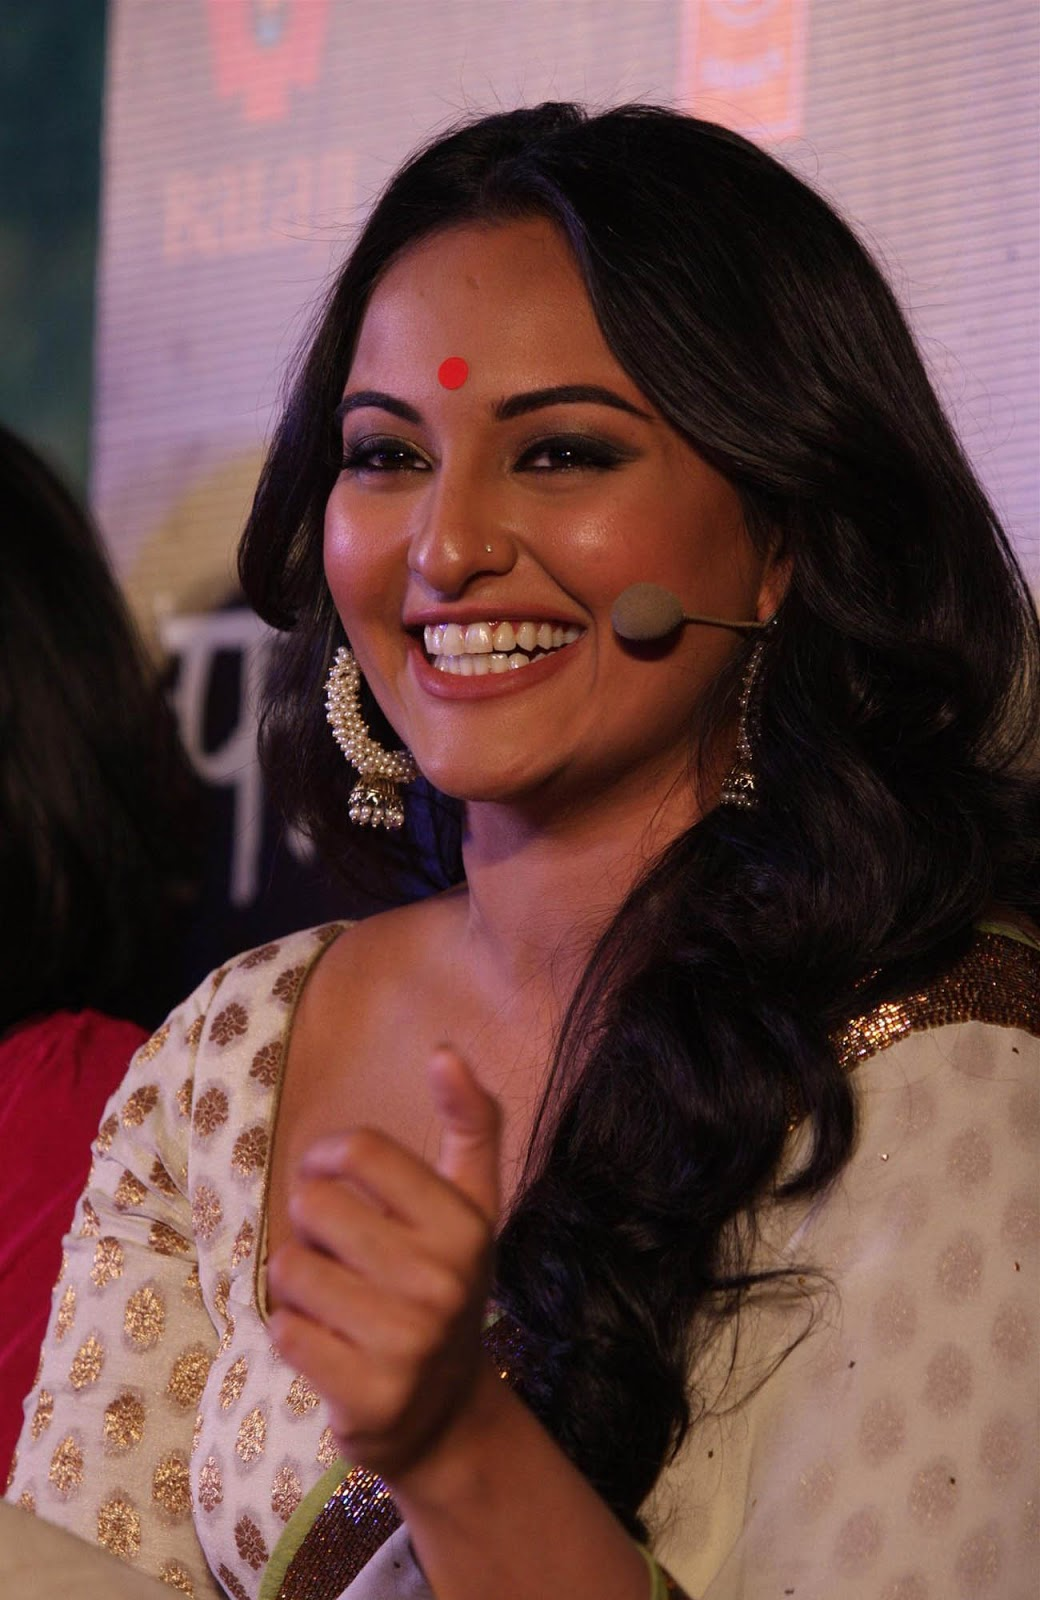 sonakshi sinha latest hd wallpapers - photo #7